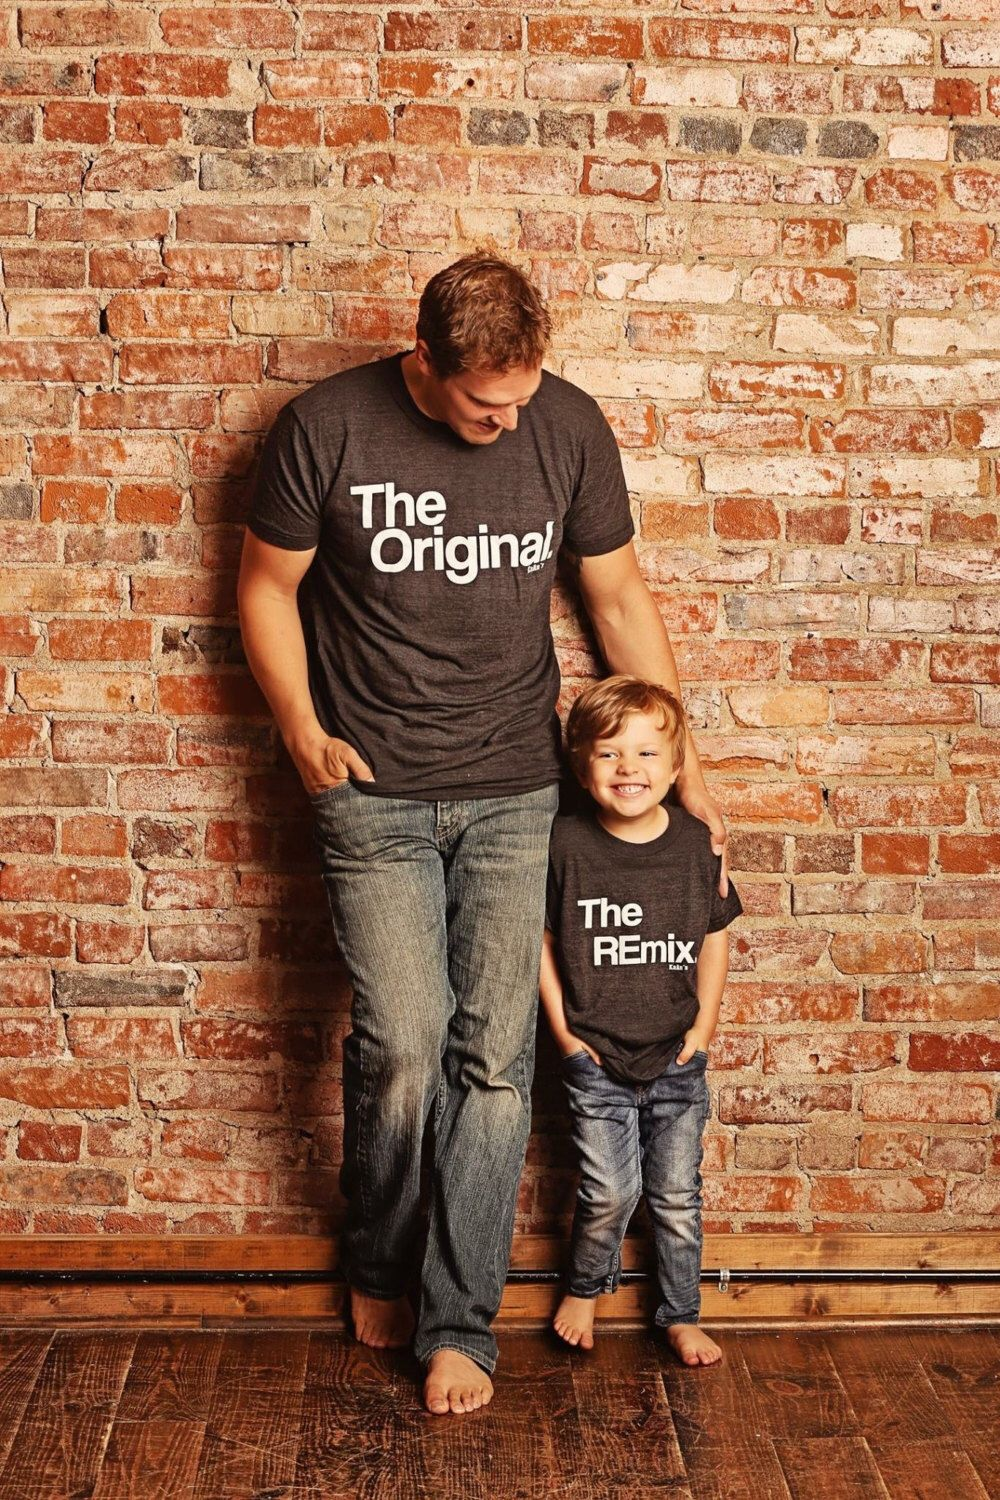 97c346710 Absolutely adorable father and son matching shirts. Definitely need one for  the dad and son in your life!